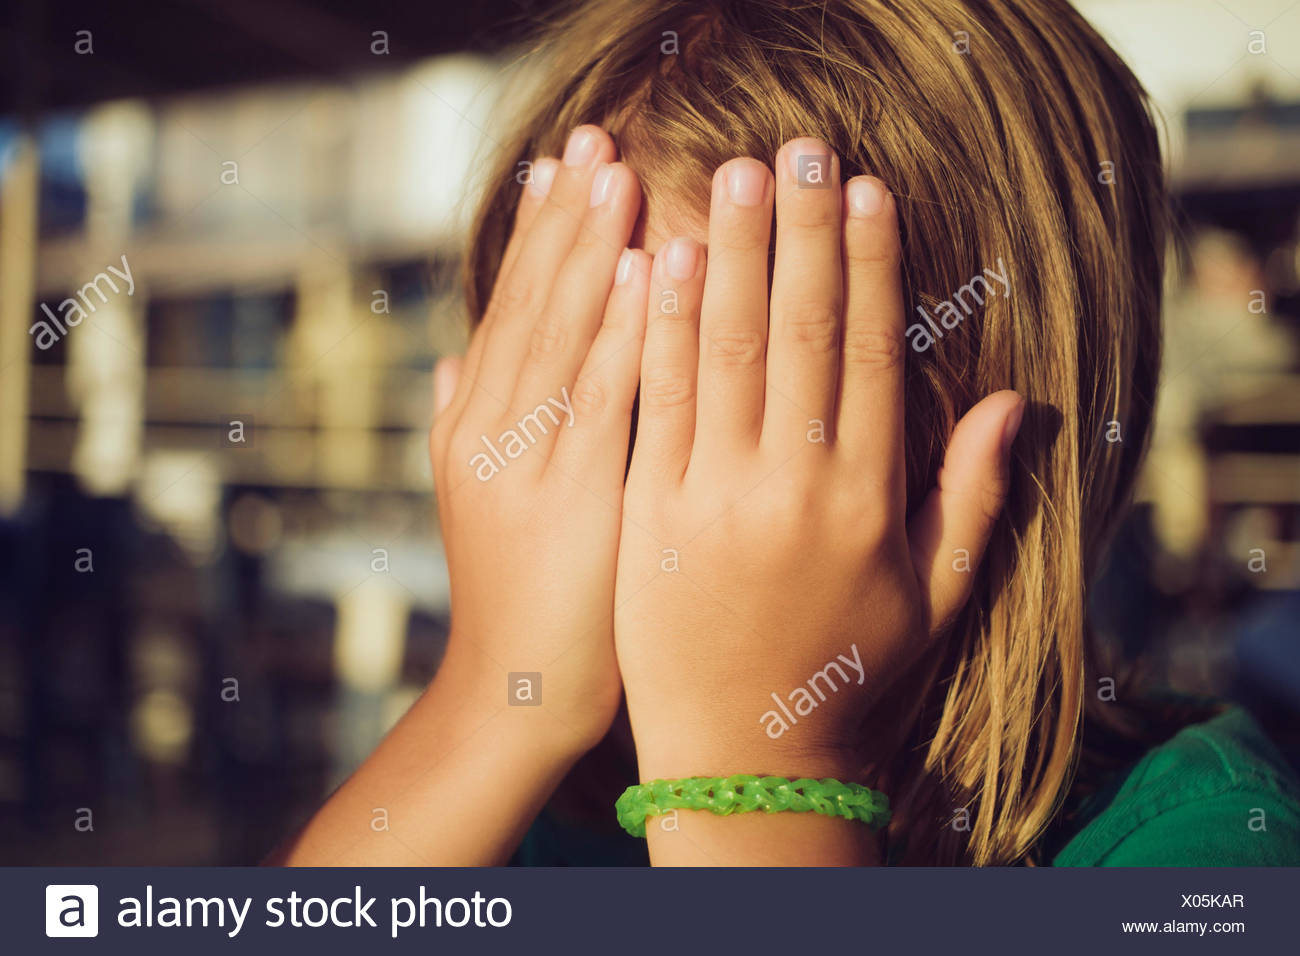 Boy hiding face with hands - Stock Image